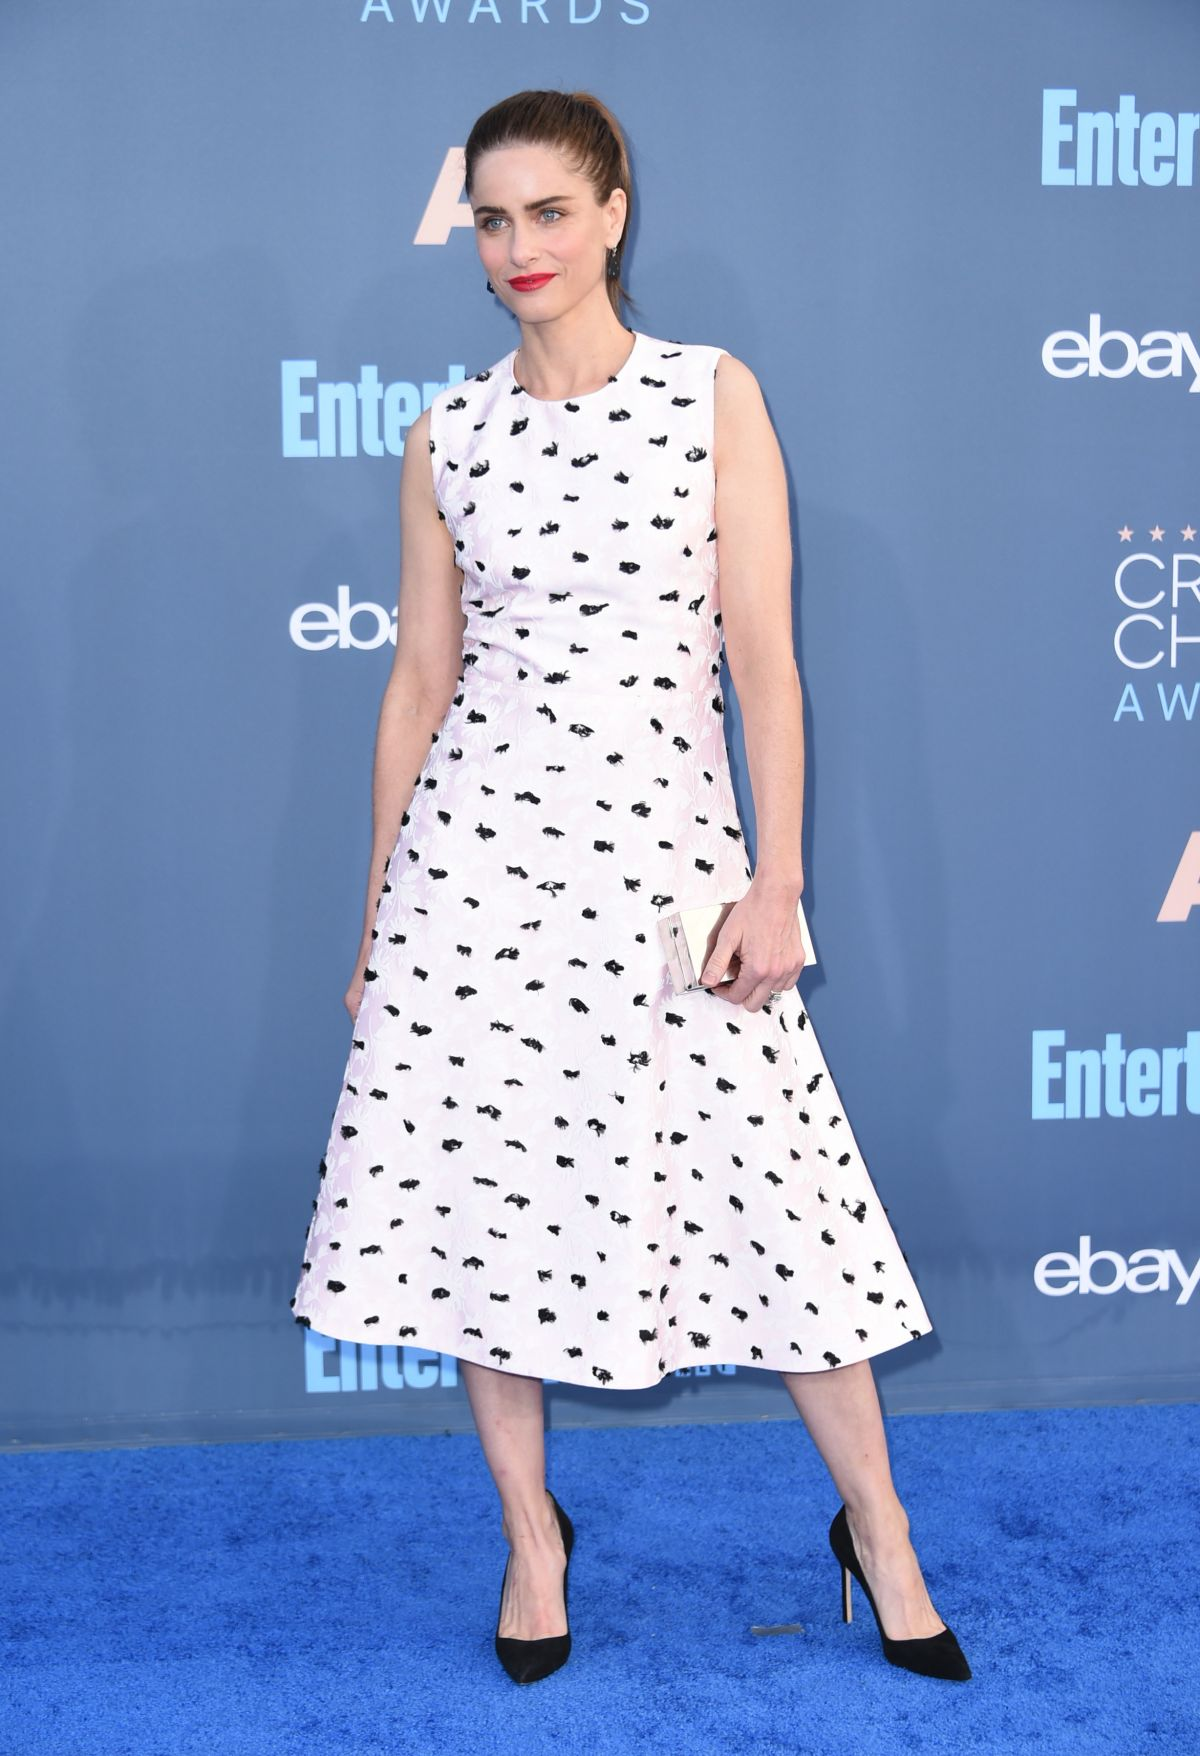 Amanda Peet At The 22nd Annual Critics' Choice Awards in Santa Monica   amanda-peet-at-the-22nd-annual-critics-choice-awards-in-santa-monica-_9